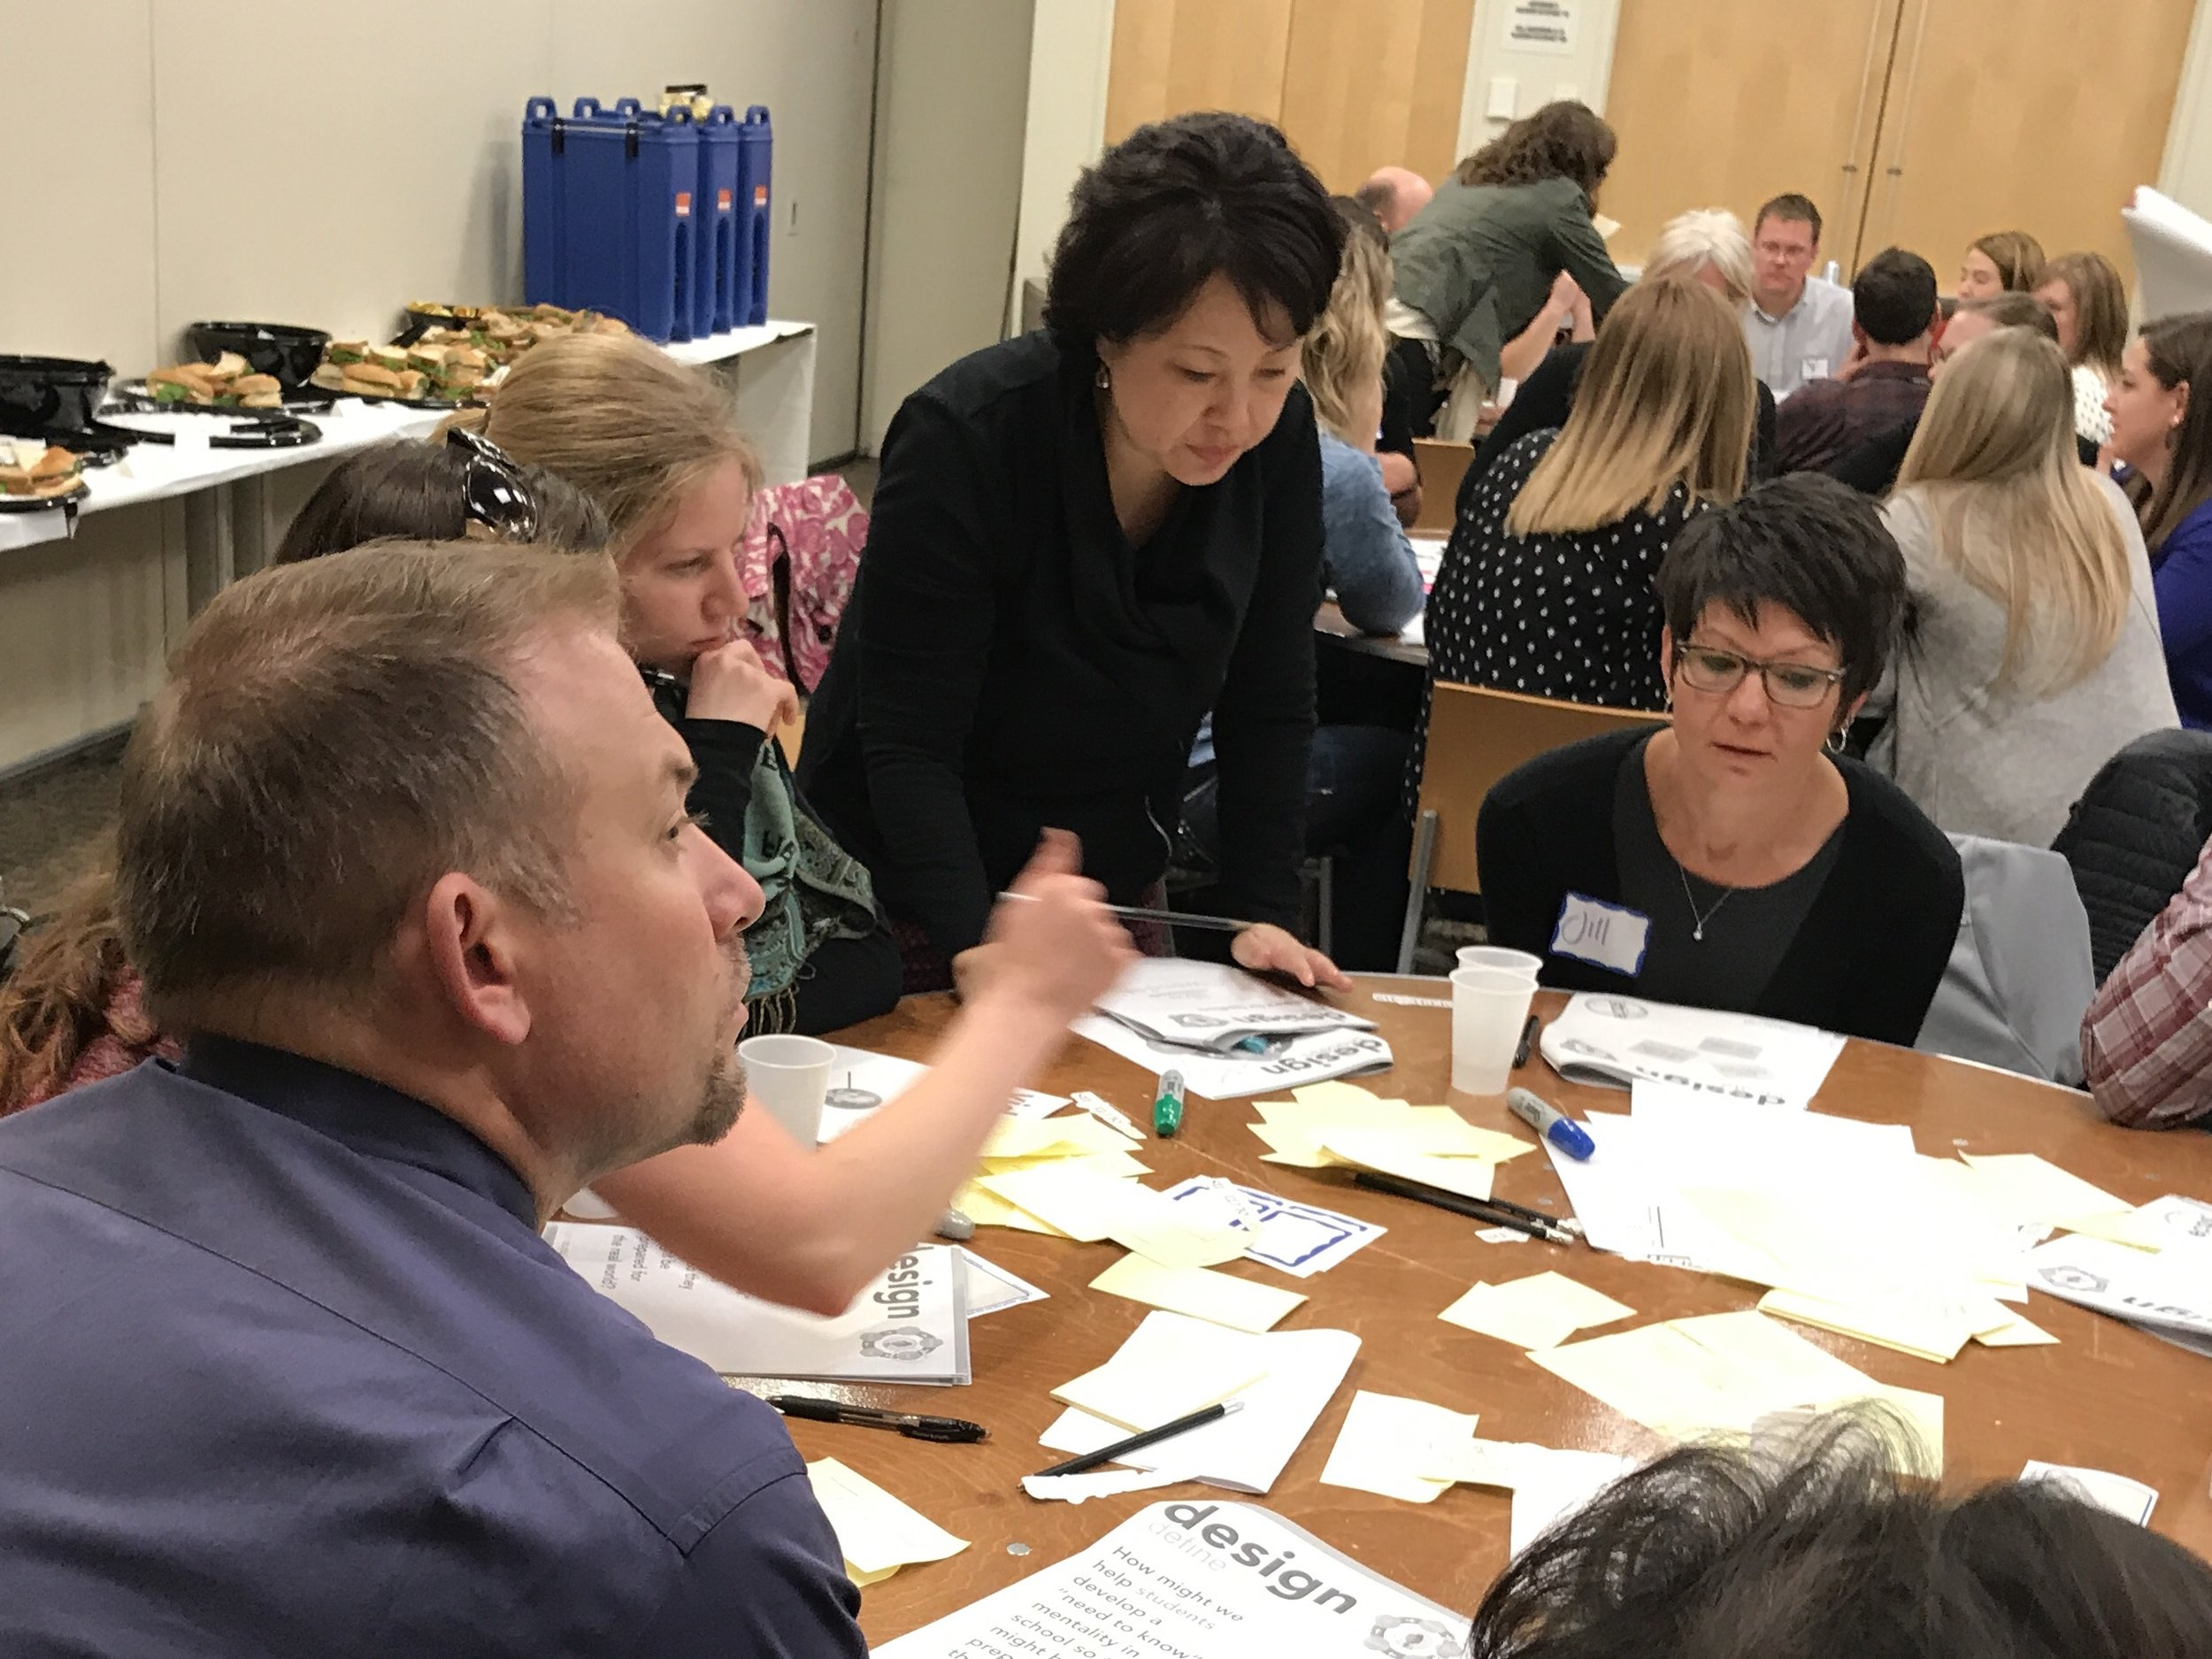 In all of our engagements at 2Rev,we work to create authentic, personalized learning experiences for educators that model the approach we seek for kids. This photo is from a recent design kick-off with the bush foundation in minnesota.  Read more about that work here .